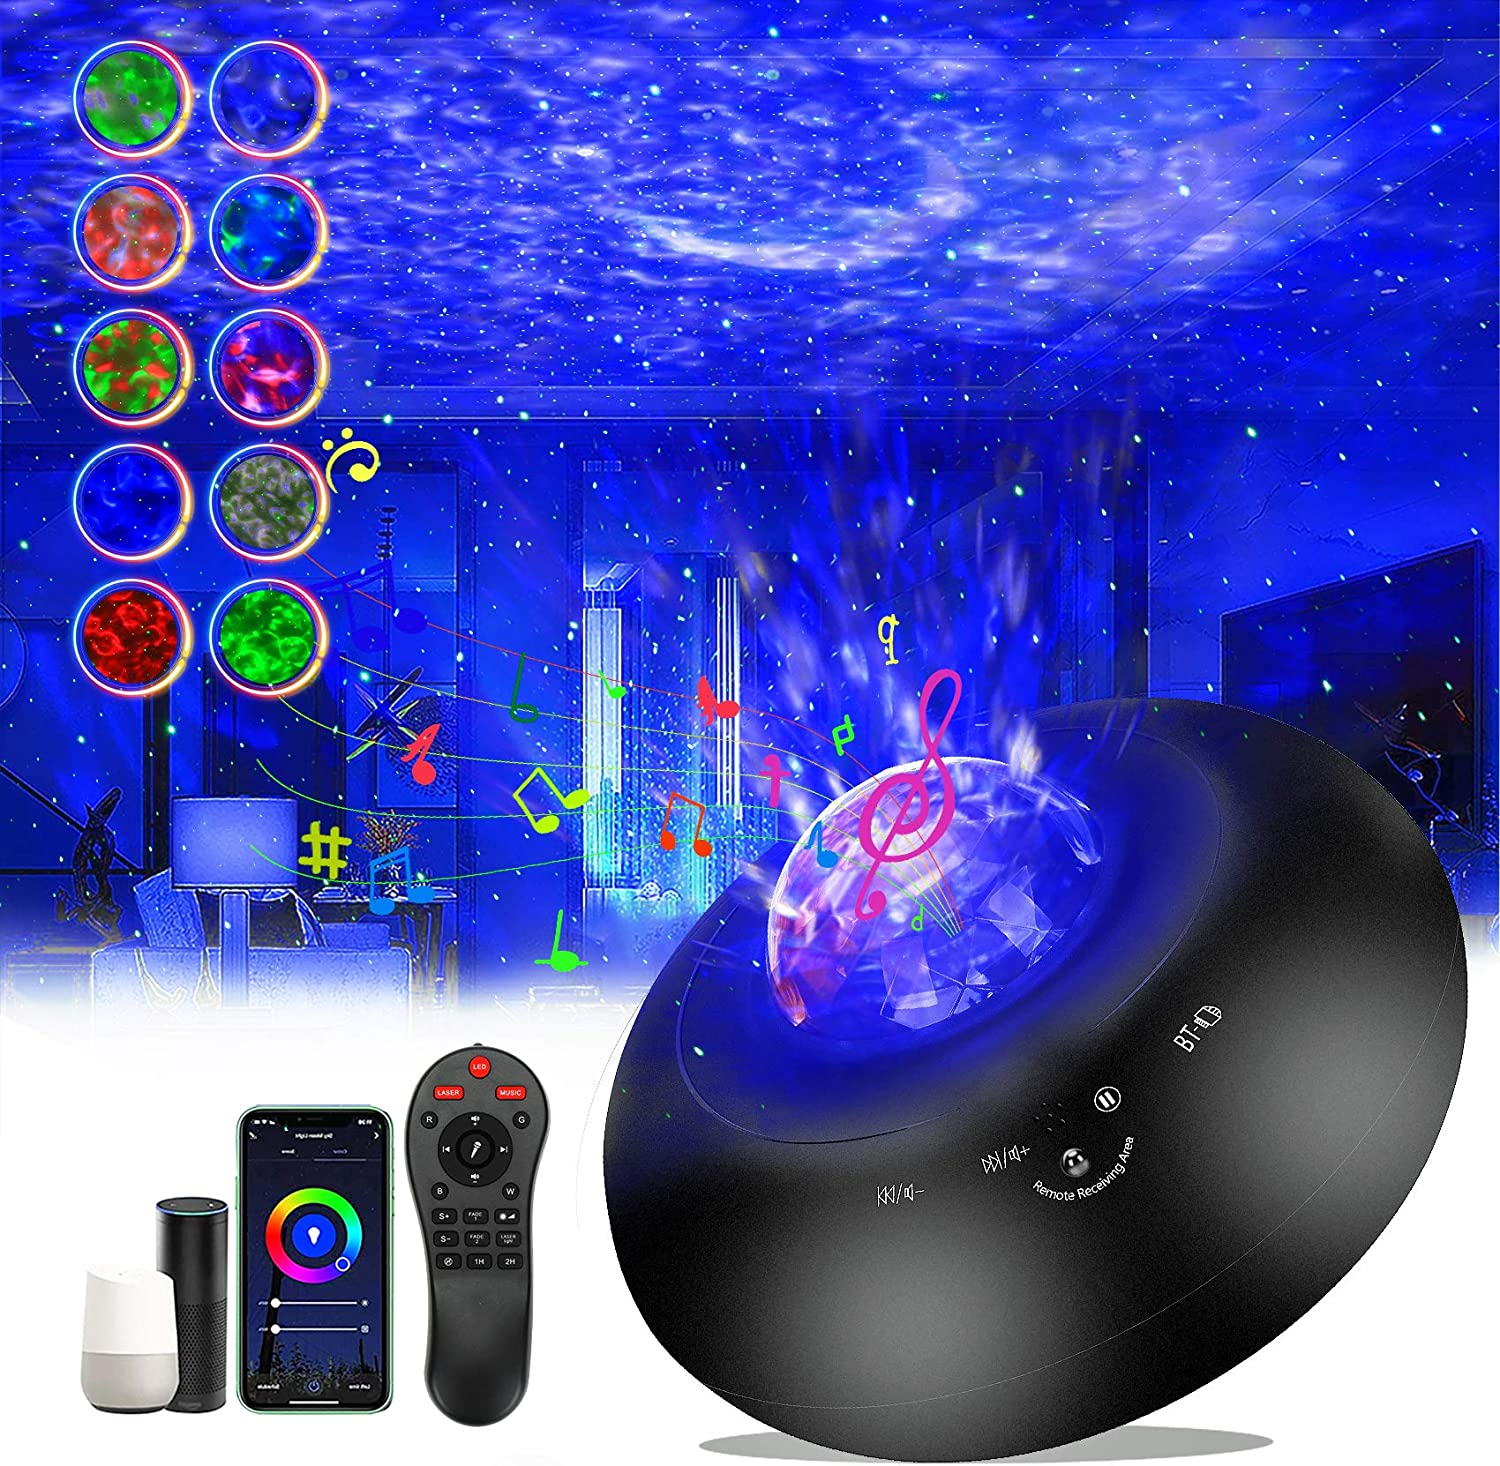 Star Projector,Smart Galaxy Projector Night Light Work with Alexa Google Home,Ocean Wave Lights Projector with APP Remote Control Bluetooth Speaker for Baby Kids Adult Bedroom/Party/Christmas Gift